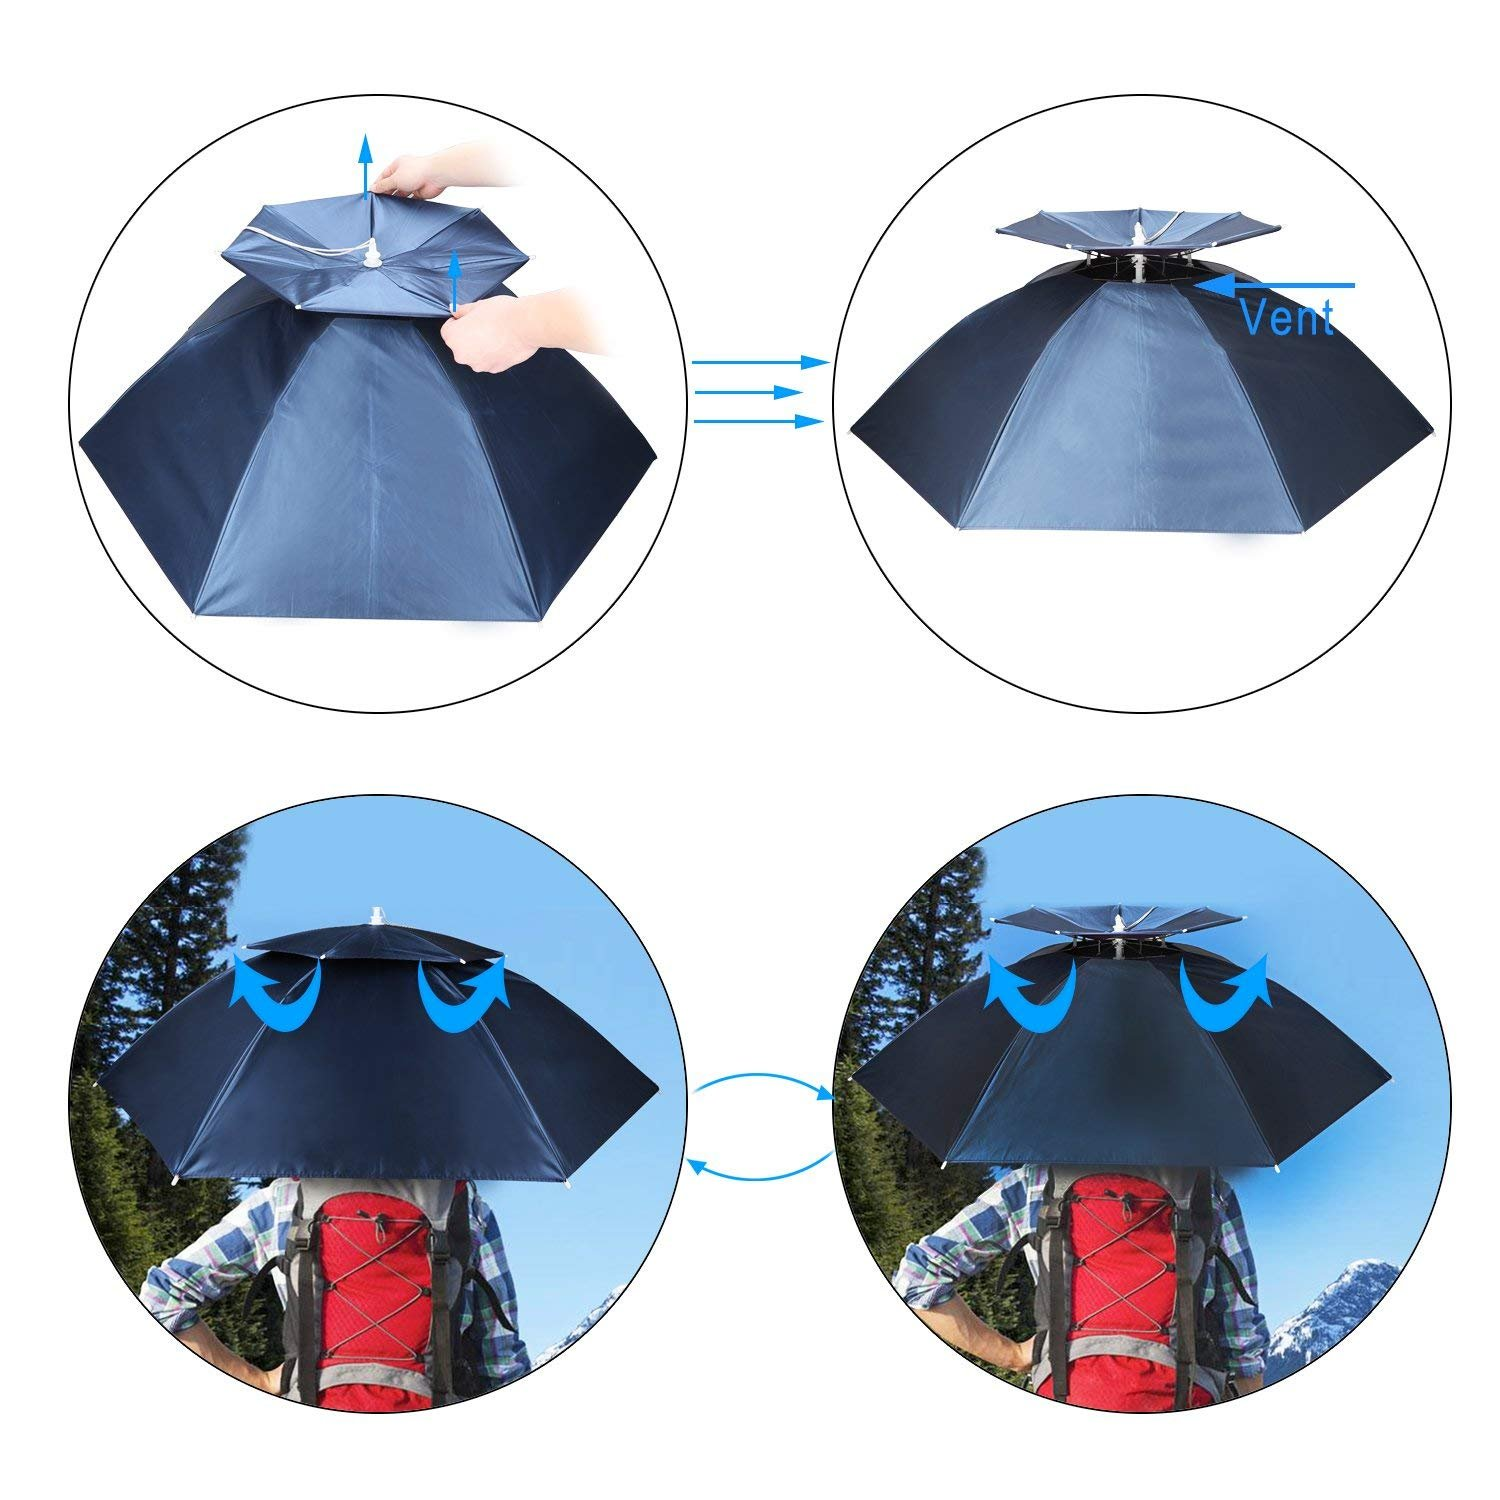 069655e82a049 Amazon.com   Luwint 36   Diameter Double Layer Folding Compact UV Wind  Protection Umbrella Hat (Blue)   Sports   Outdoors